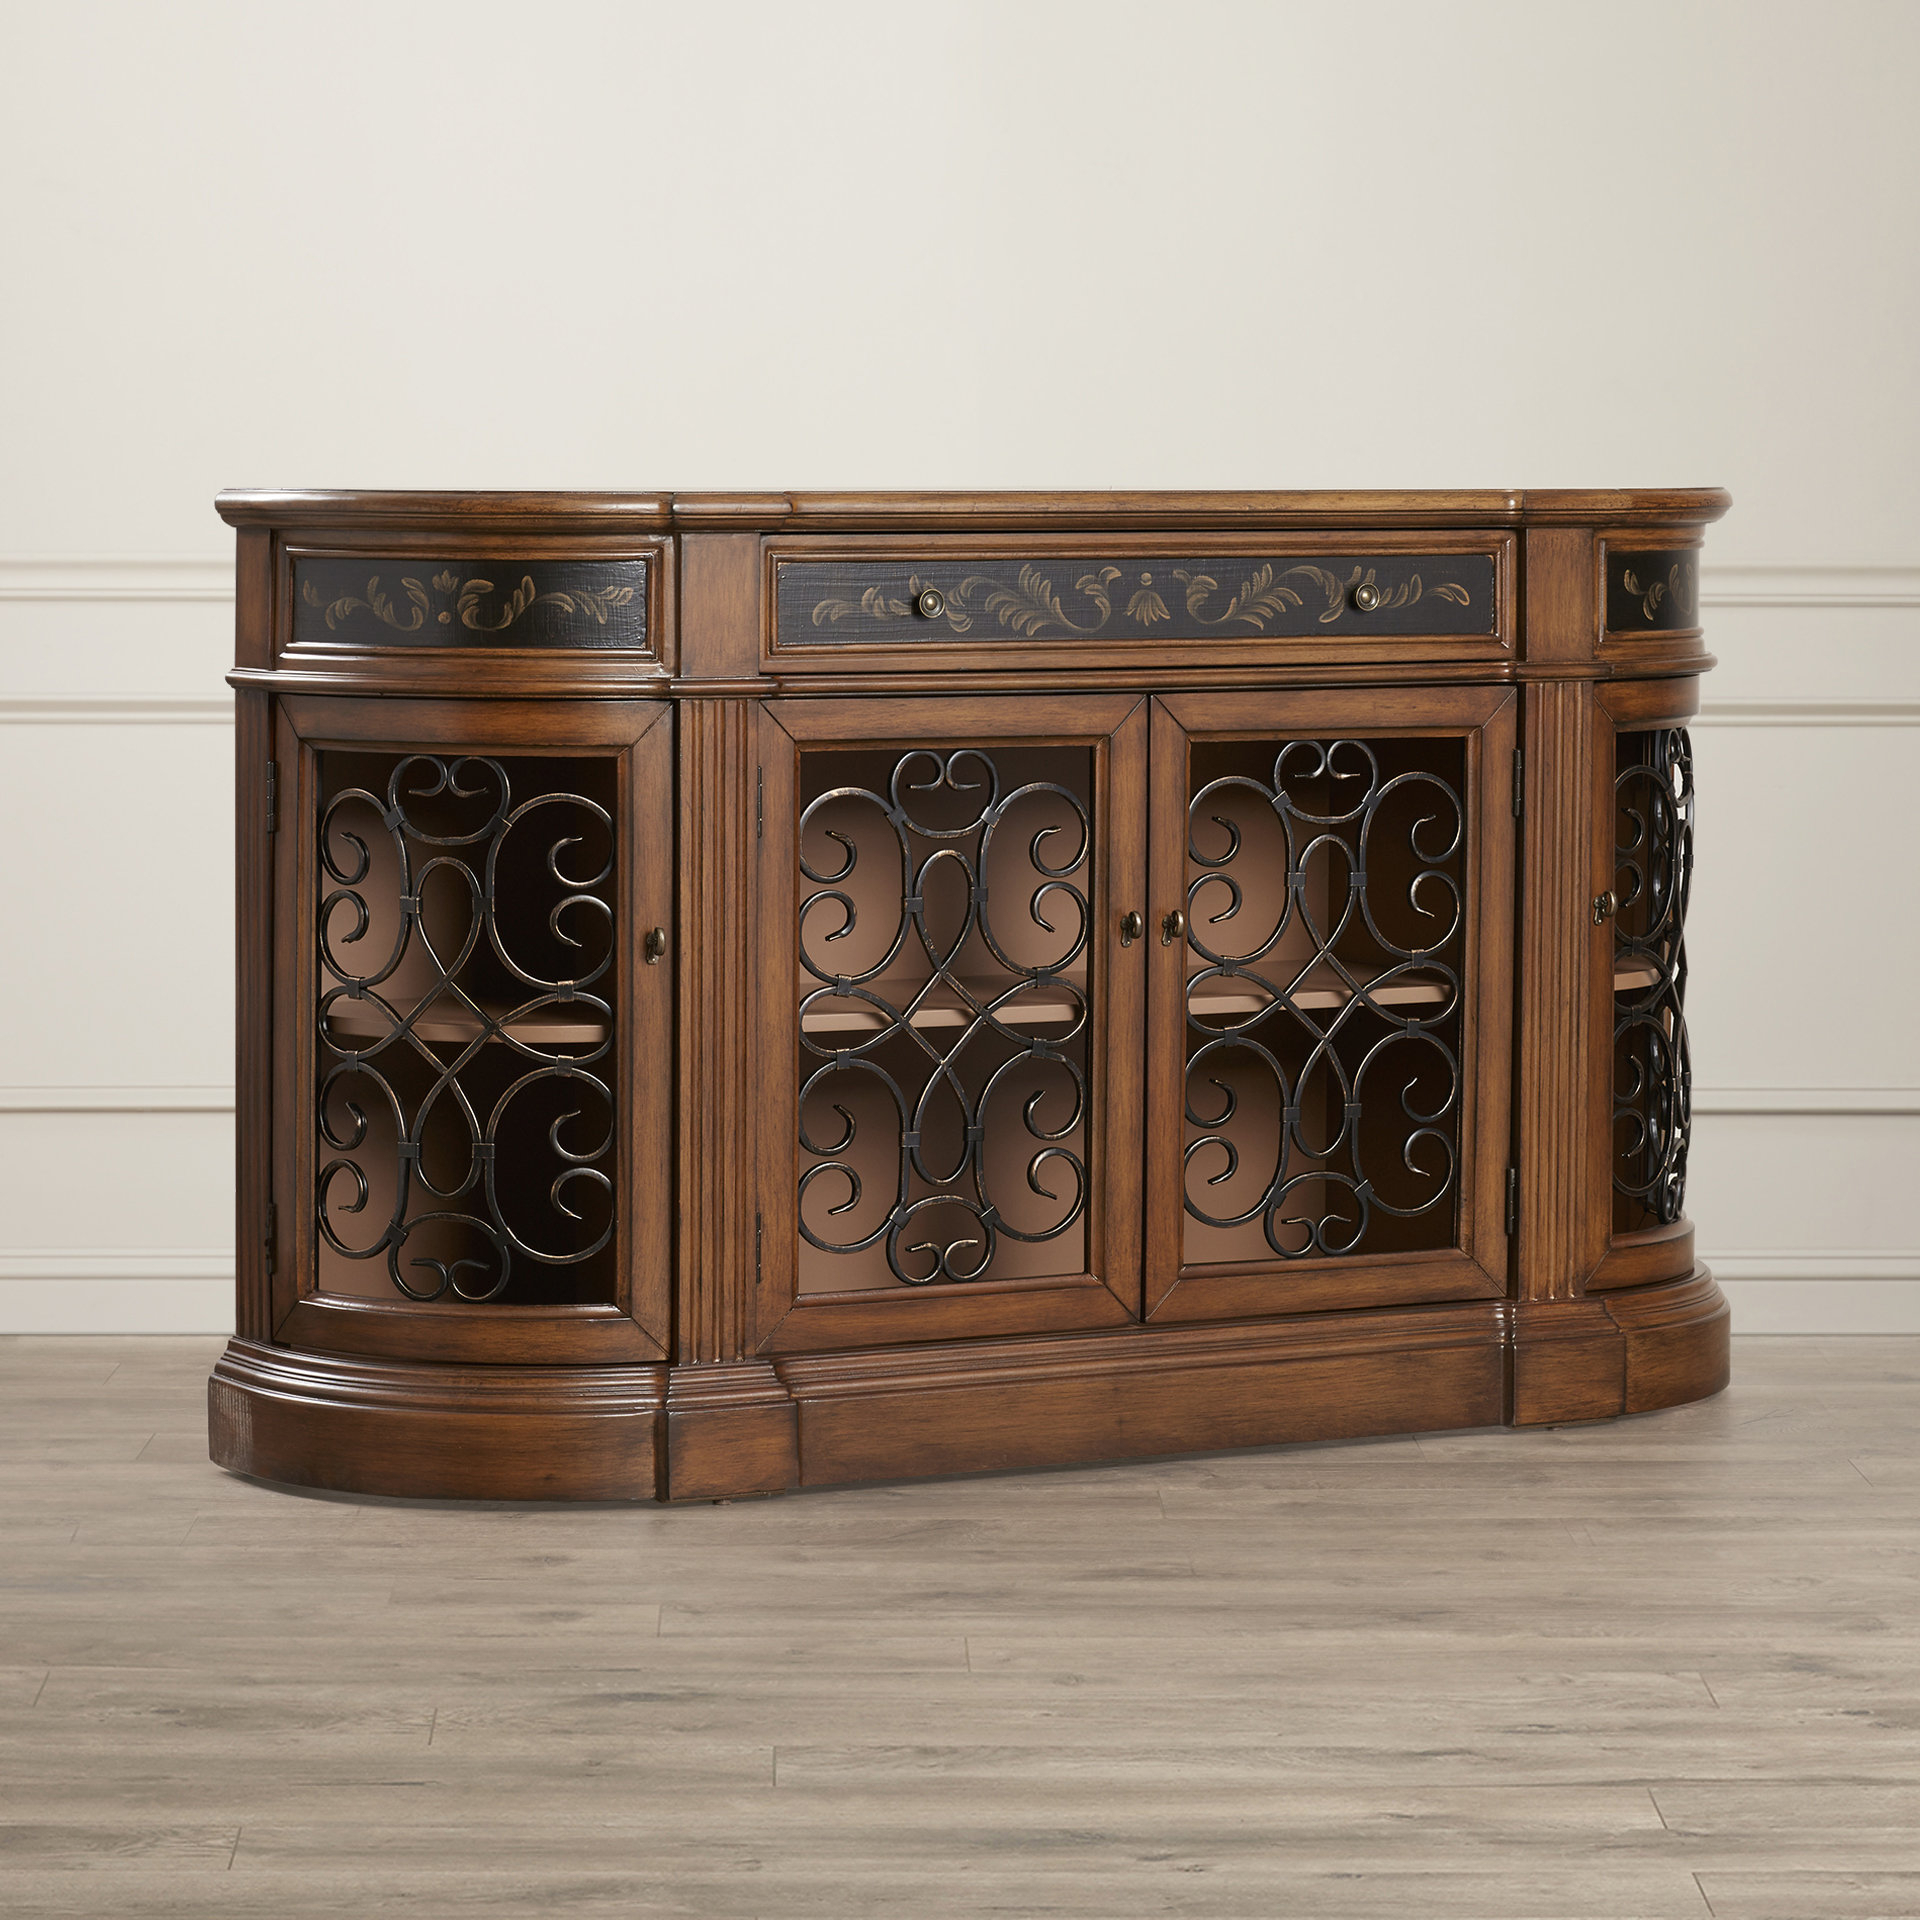 Medium Yellow Wood Sideboard / Credenza Sideboards & Buffets Intended For Nashoba Sideboards (View 19 of 20)